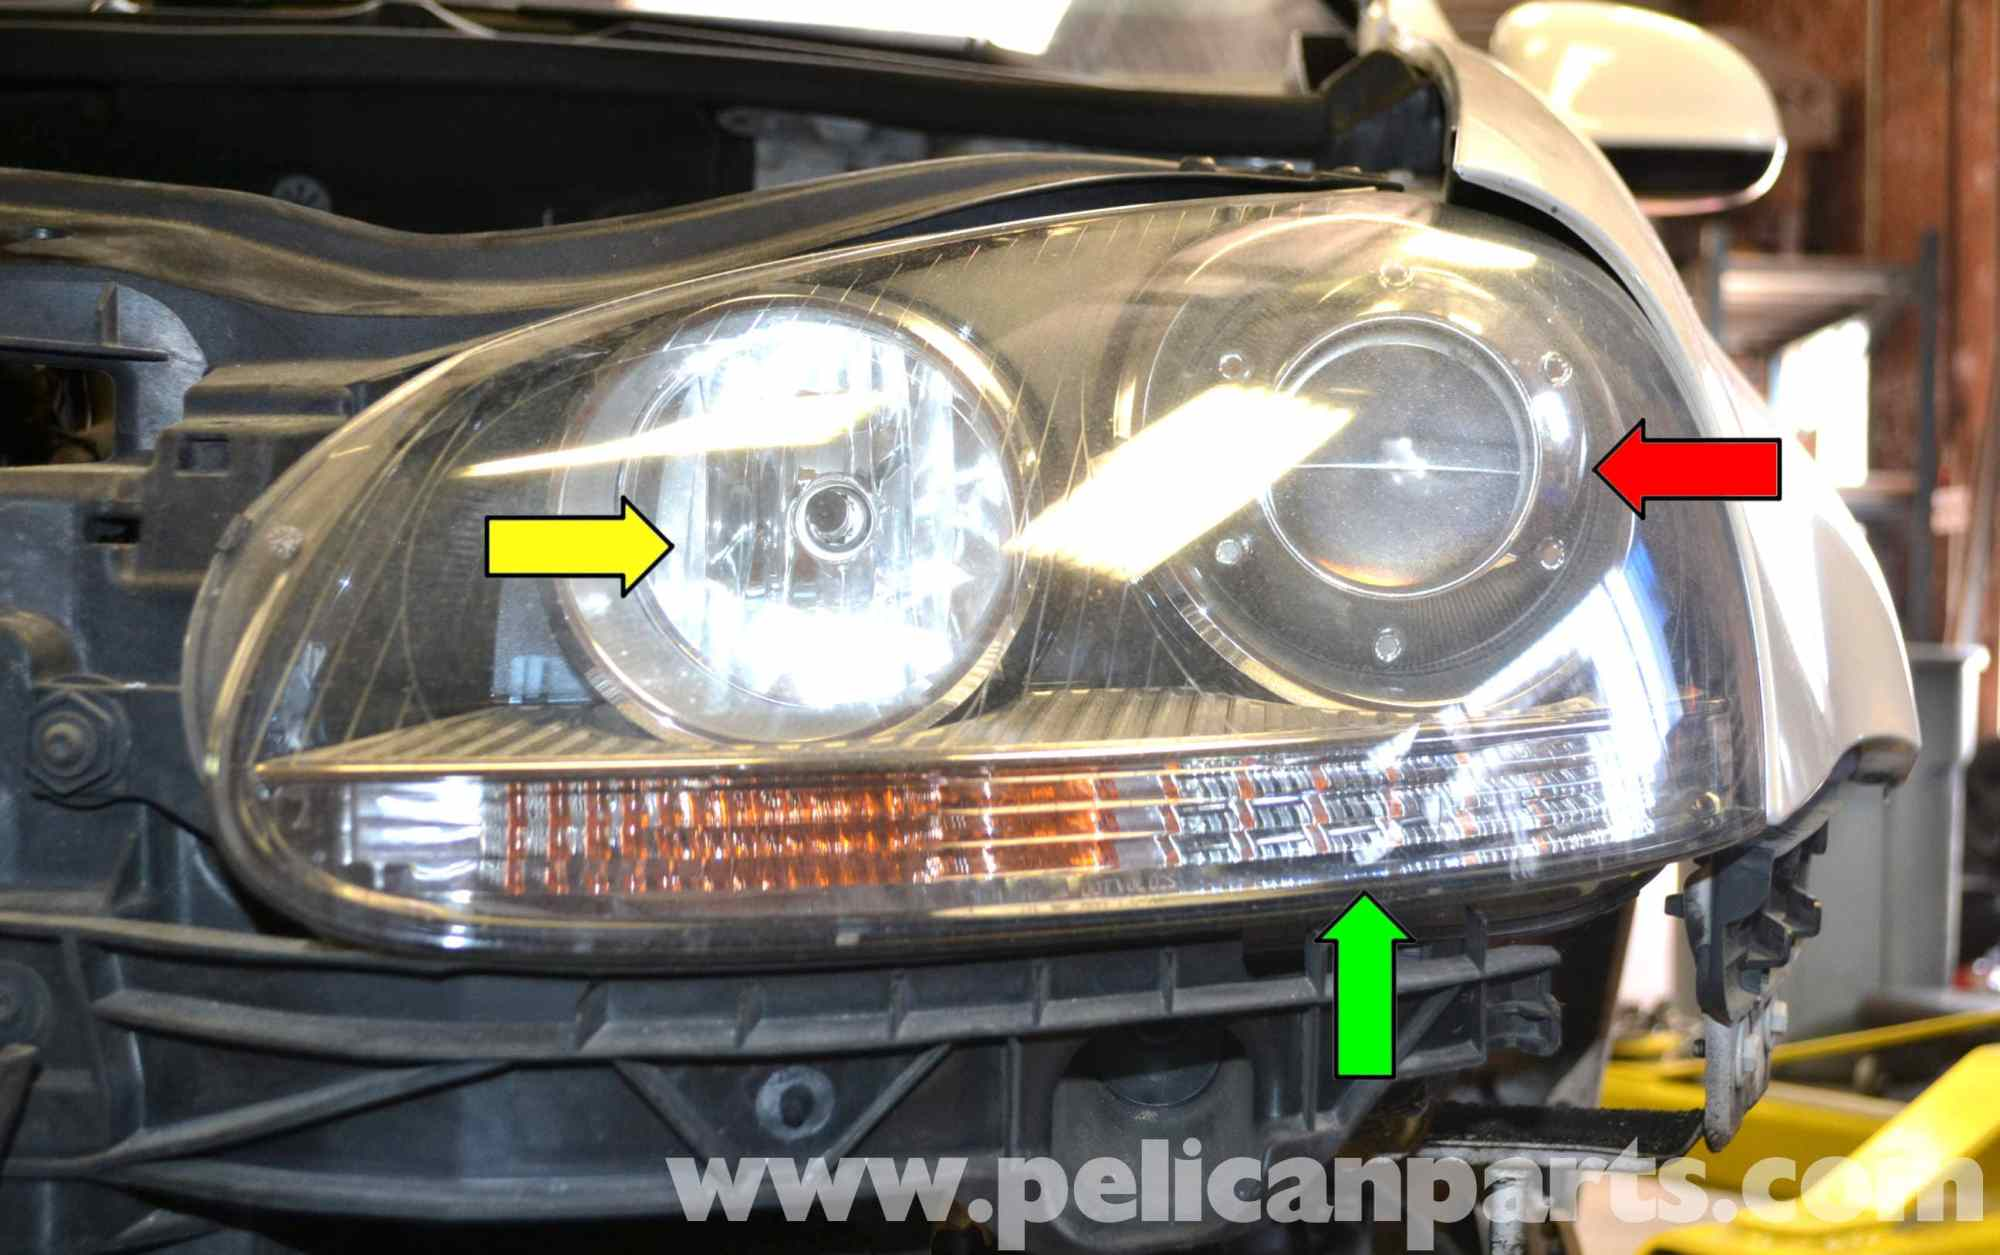 hight resolution of volkswagen golf gti mk v headlight bulb and assembly replacementlarge image extra large image st pelican parts 2006 volkswagen beetle wiring diagram